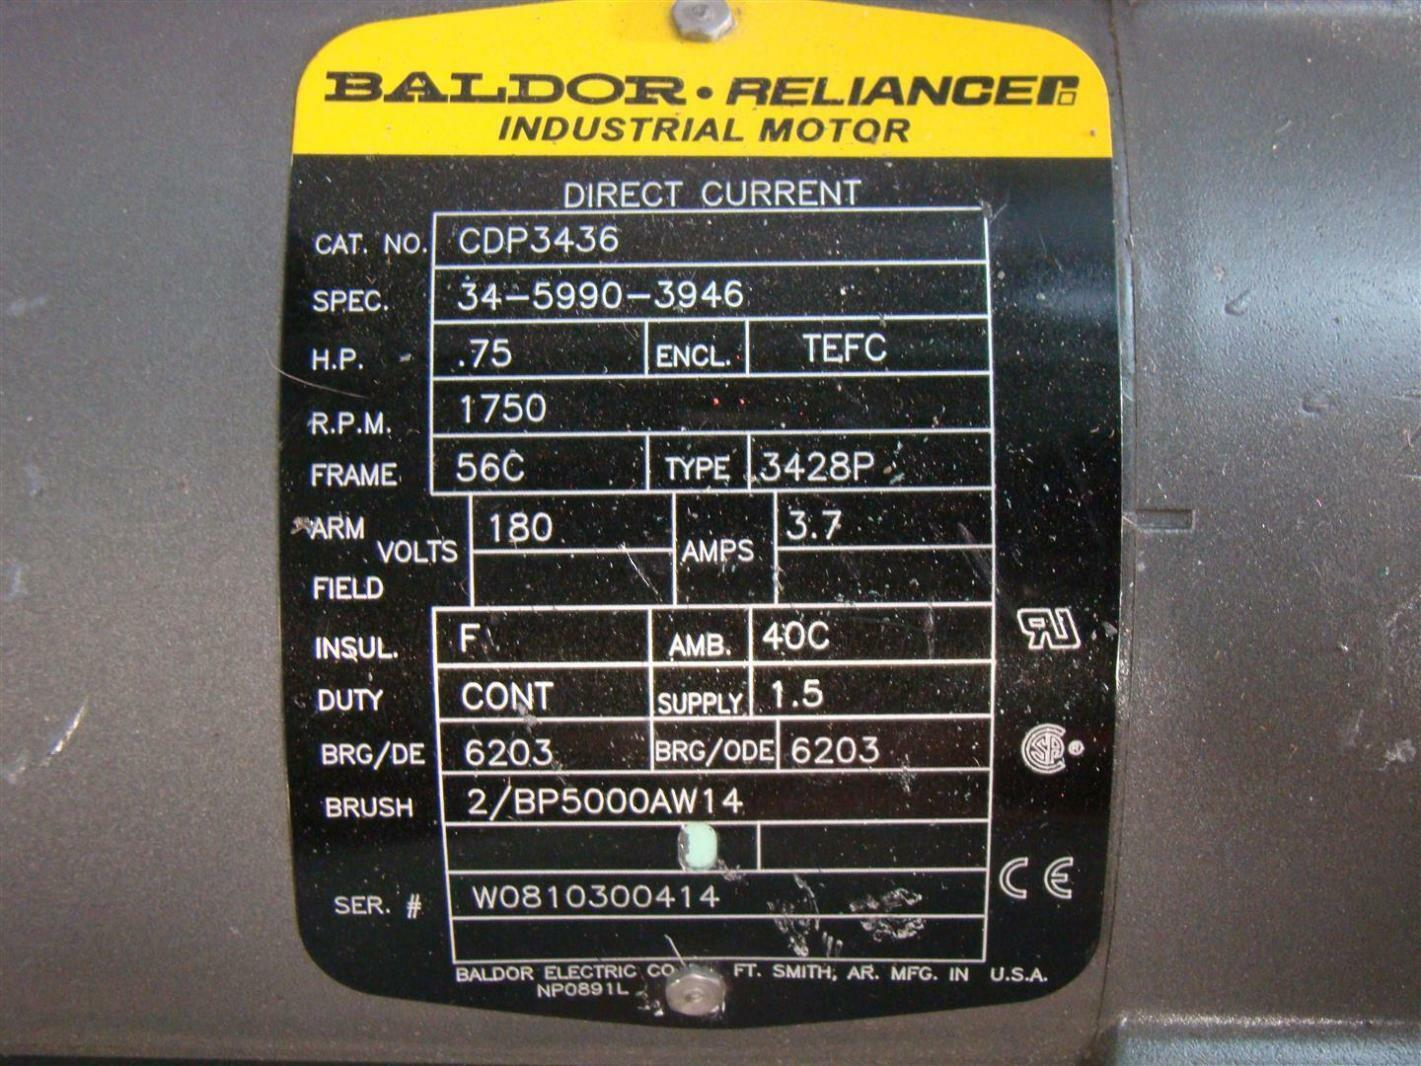 baldor reliancer dc electric motor .75hp 1750rpm 180v ... wire diagrams motor name plate 3 wire winch motor wiring diagram